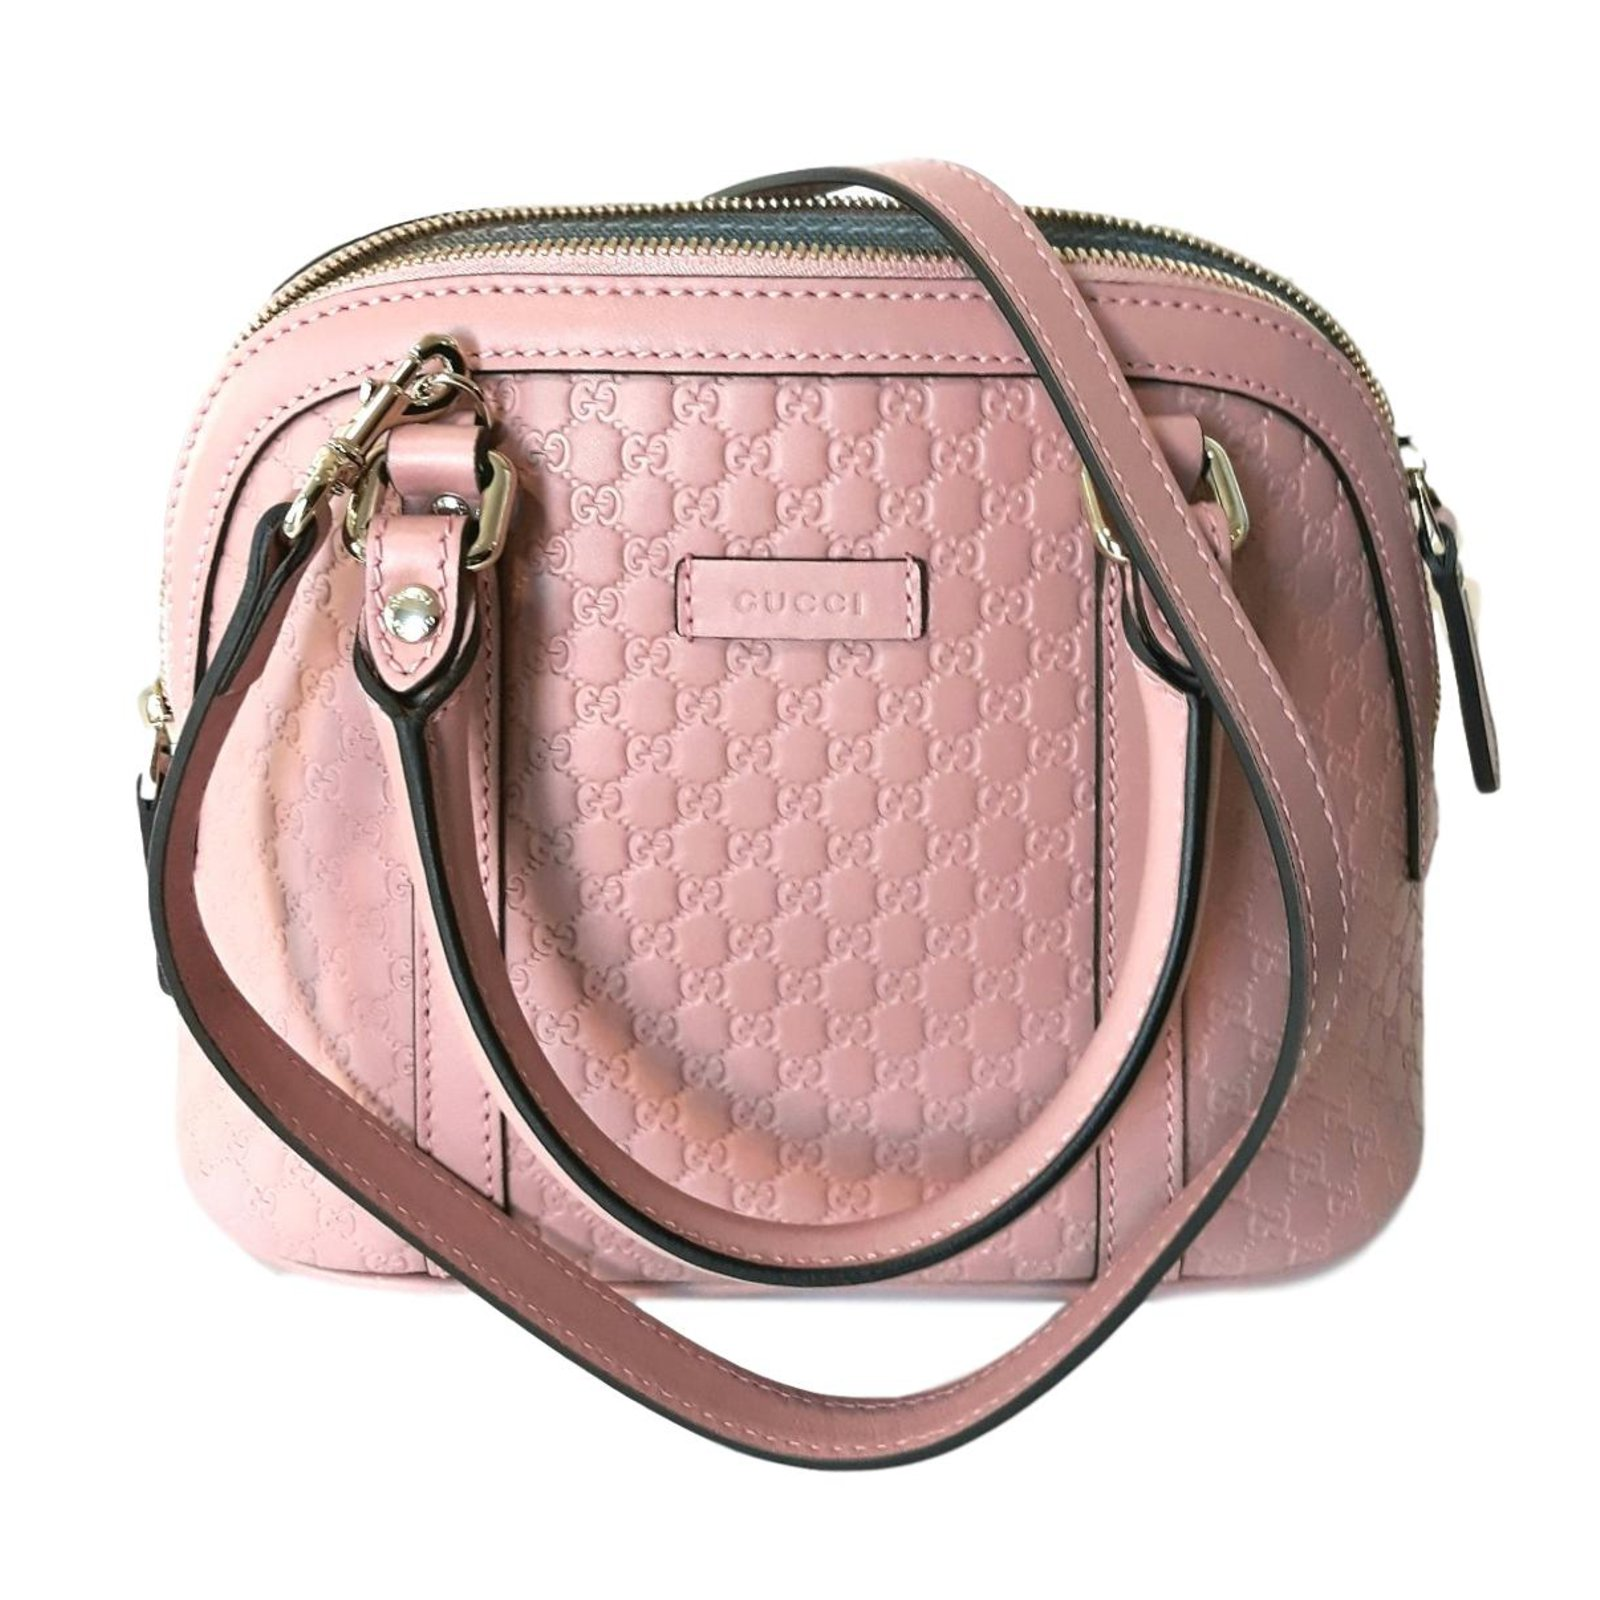 Gucci Handbags Leather Pink